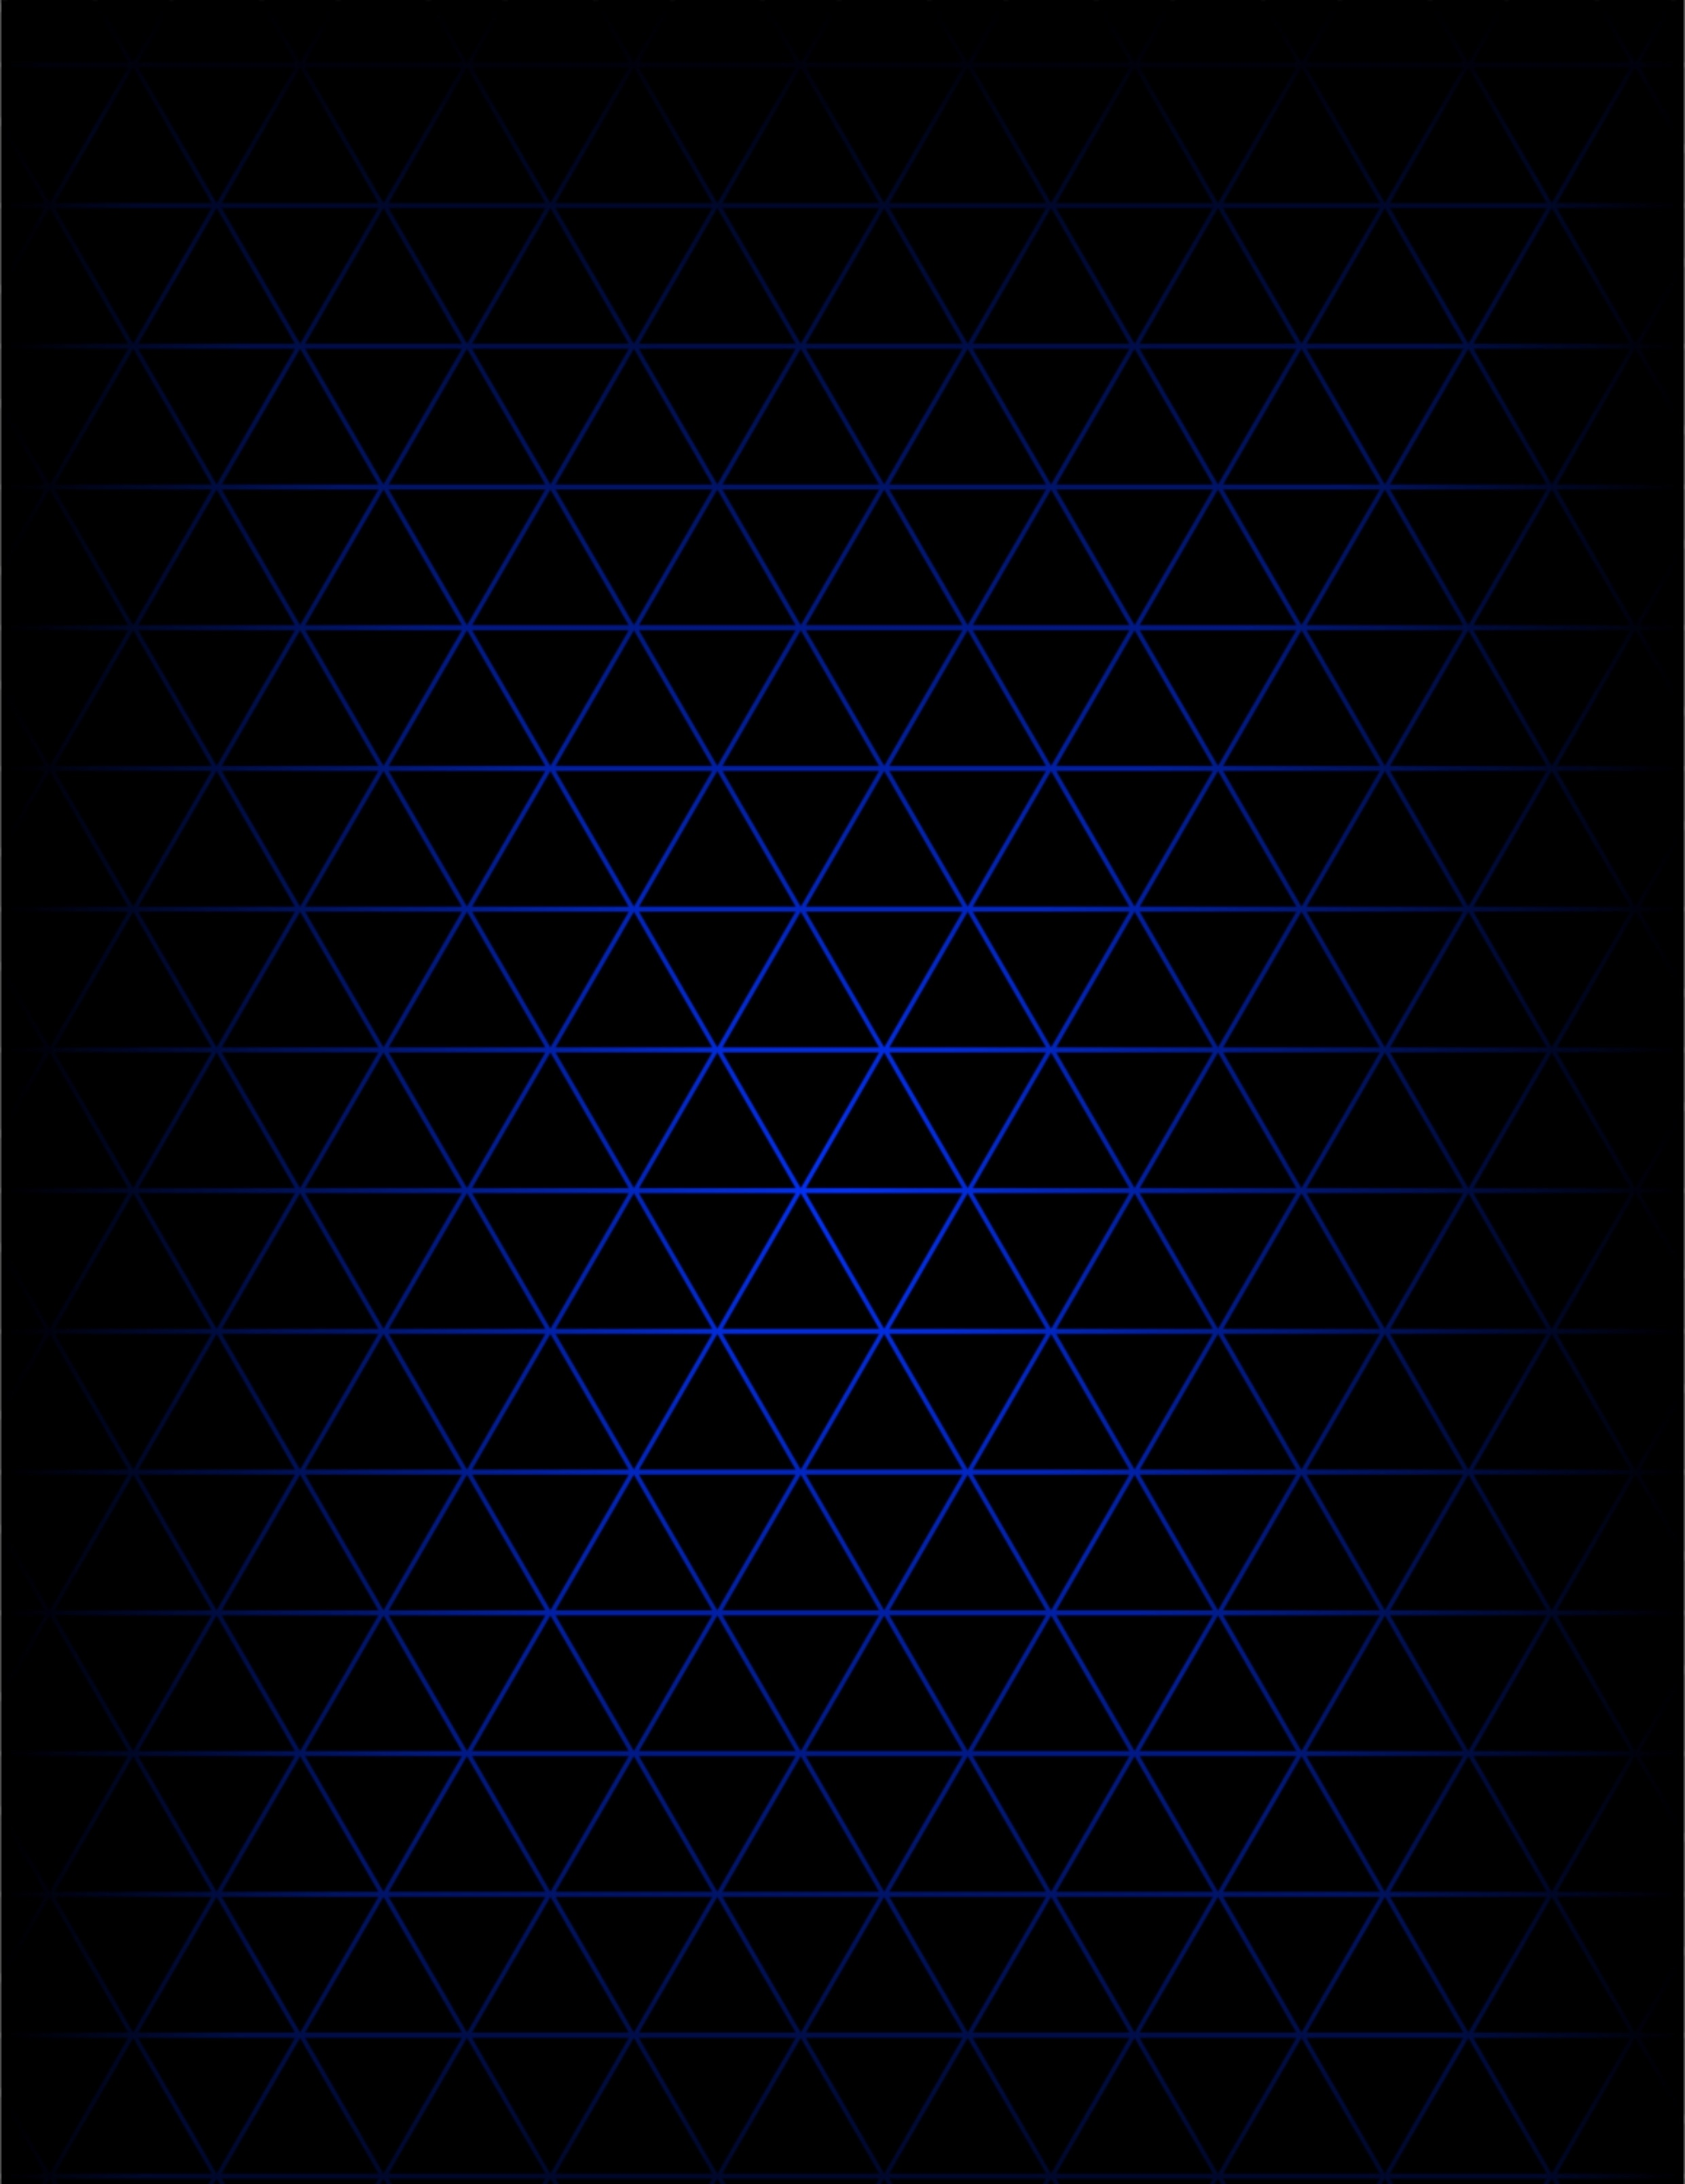 85621 download wallpaper Textures, Texture, Triangles, Glow, Patterns screensavers and pictures for free